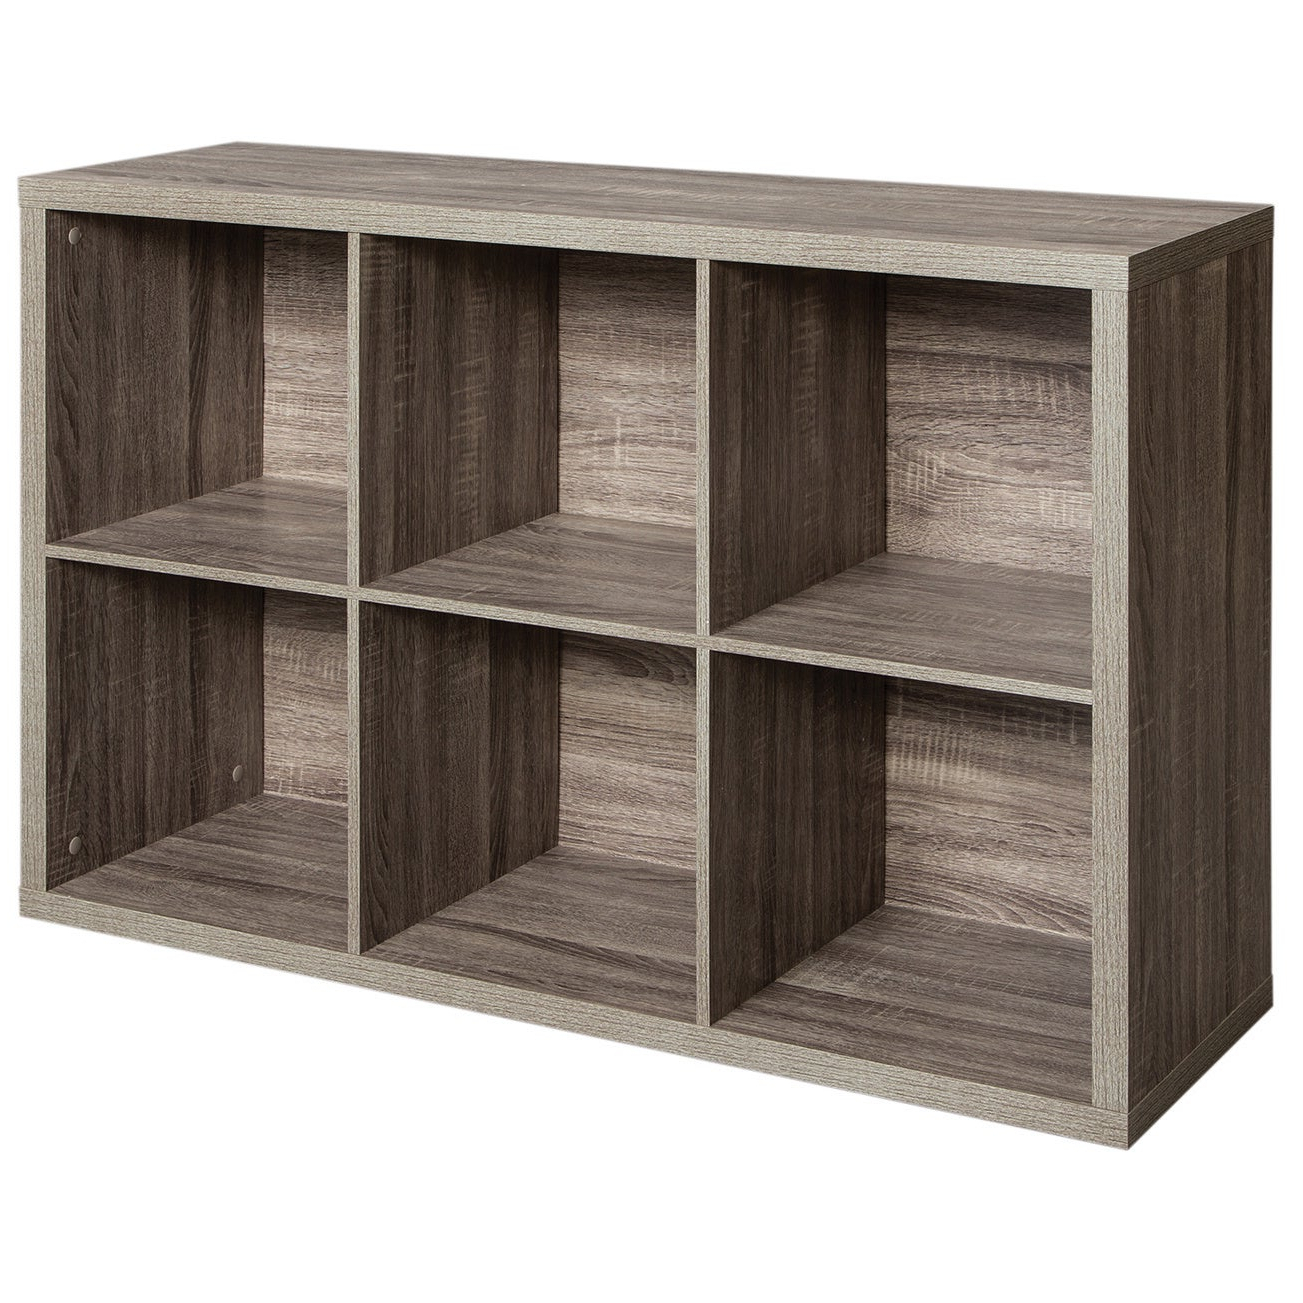 Fashionable Decorative Storage Cube Bookcases Within Closetmaid Decorative Storage 6 Cube Organizer (View 10 of 20)